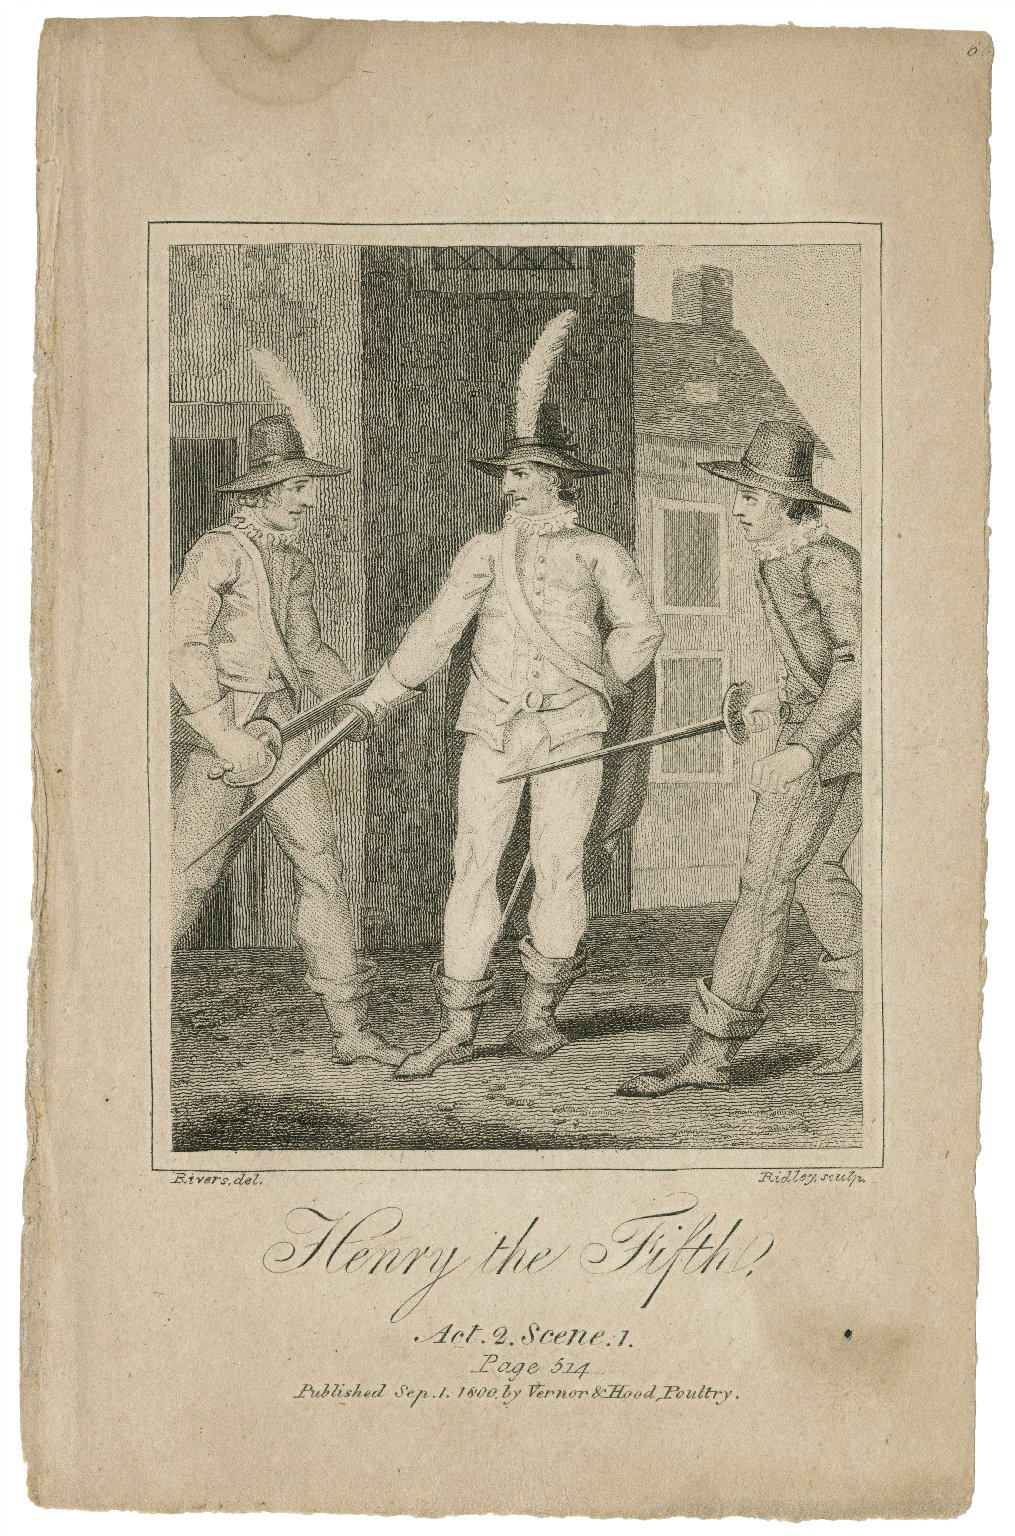 Henry the Fifth, act 2, scene 1, page 514 [graphic] / Rivers, del. ; Ridley, sculp.